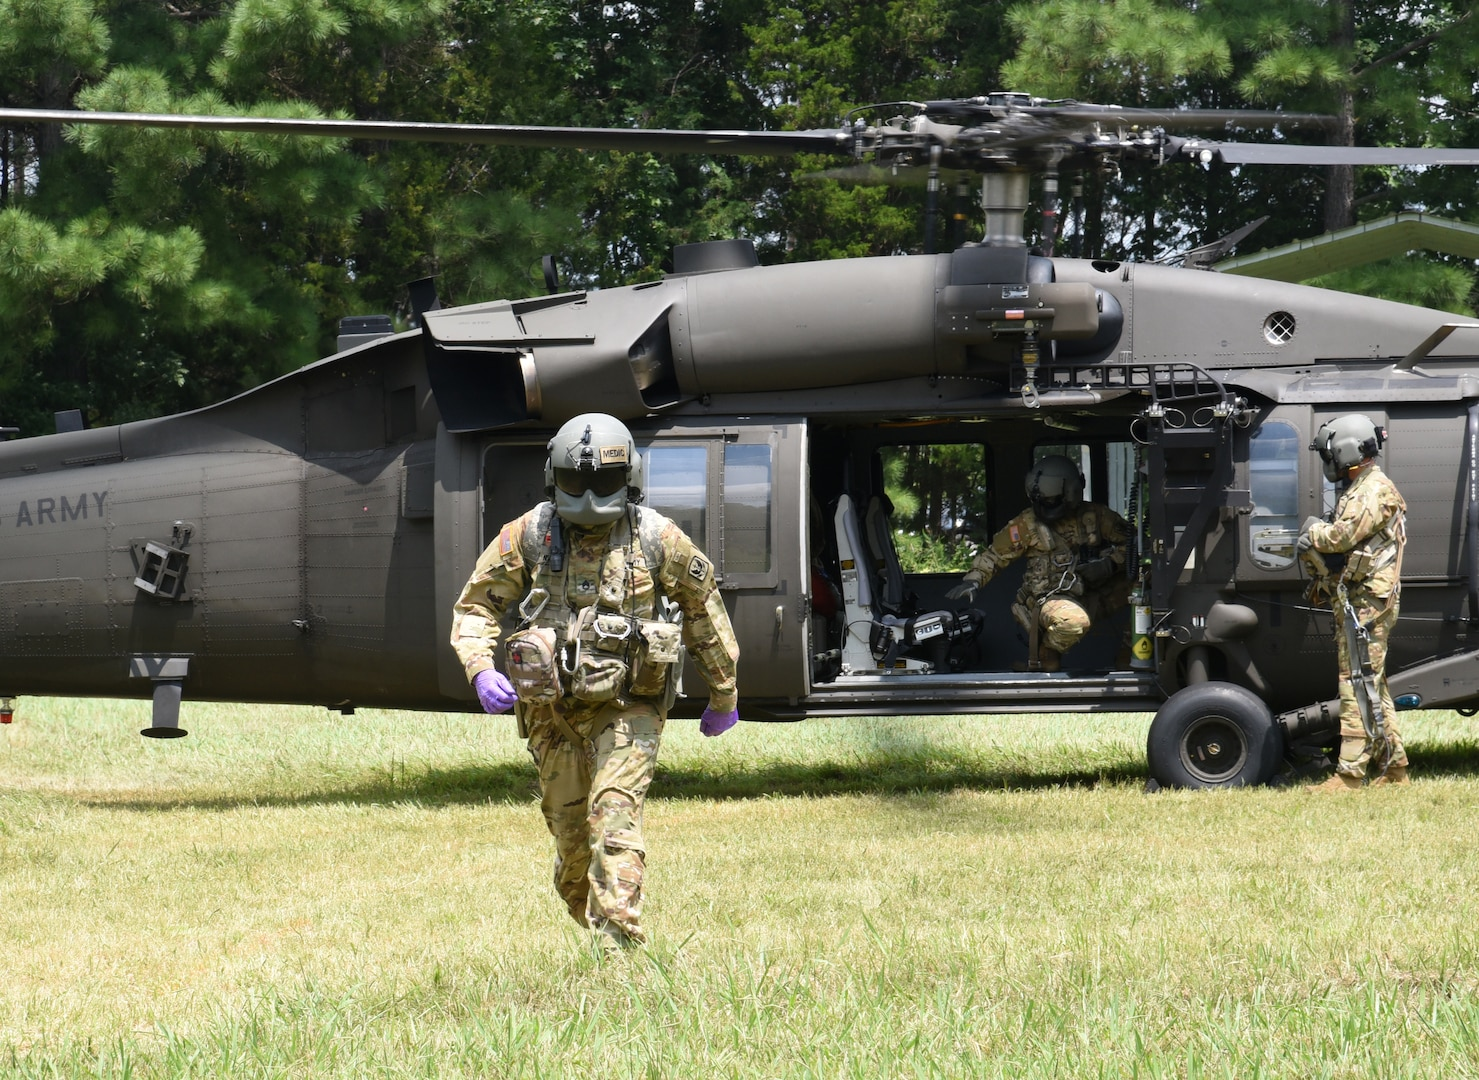 1-169th conducts medical evacuation training during AT